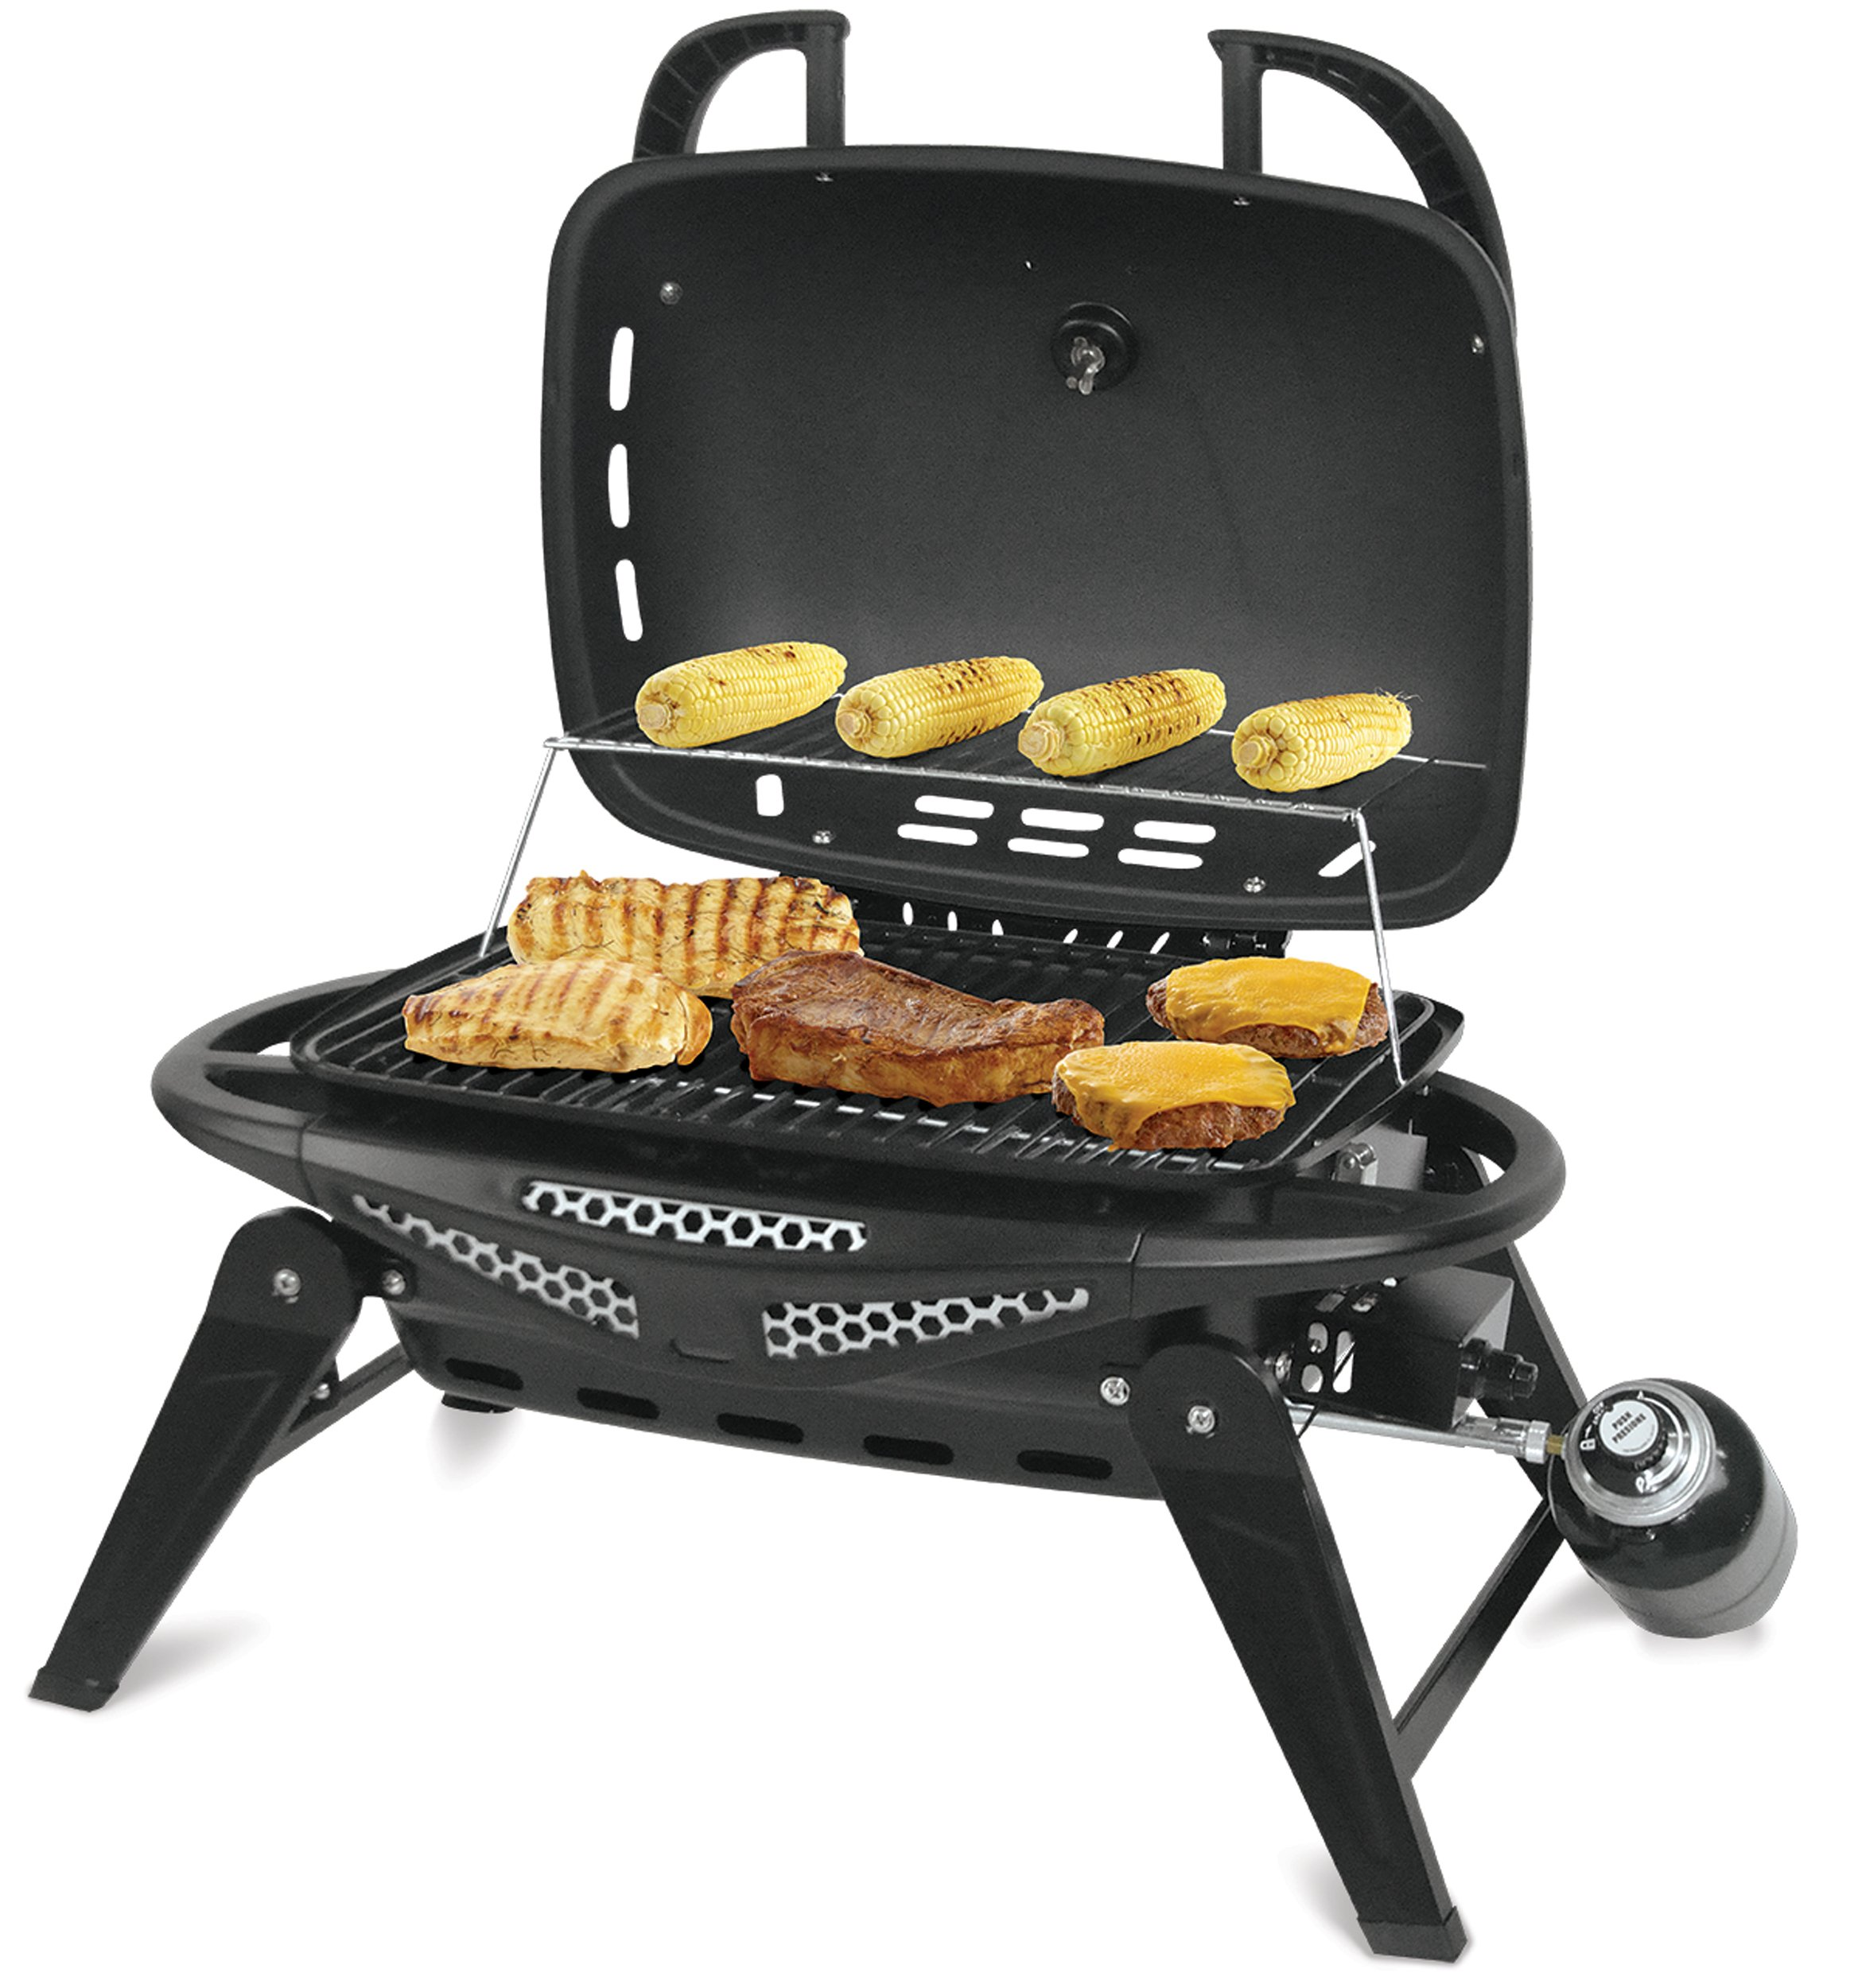 Blue Rhino Outdoor Lp Gas / Charcoal Barbecue Grill - Black (gbt1508b)